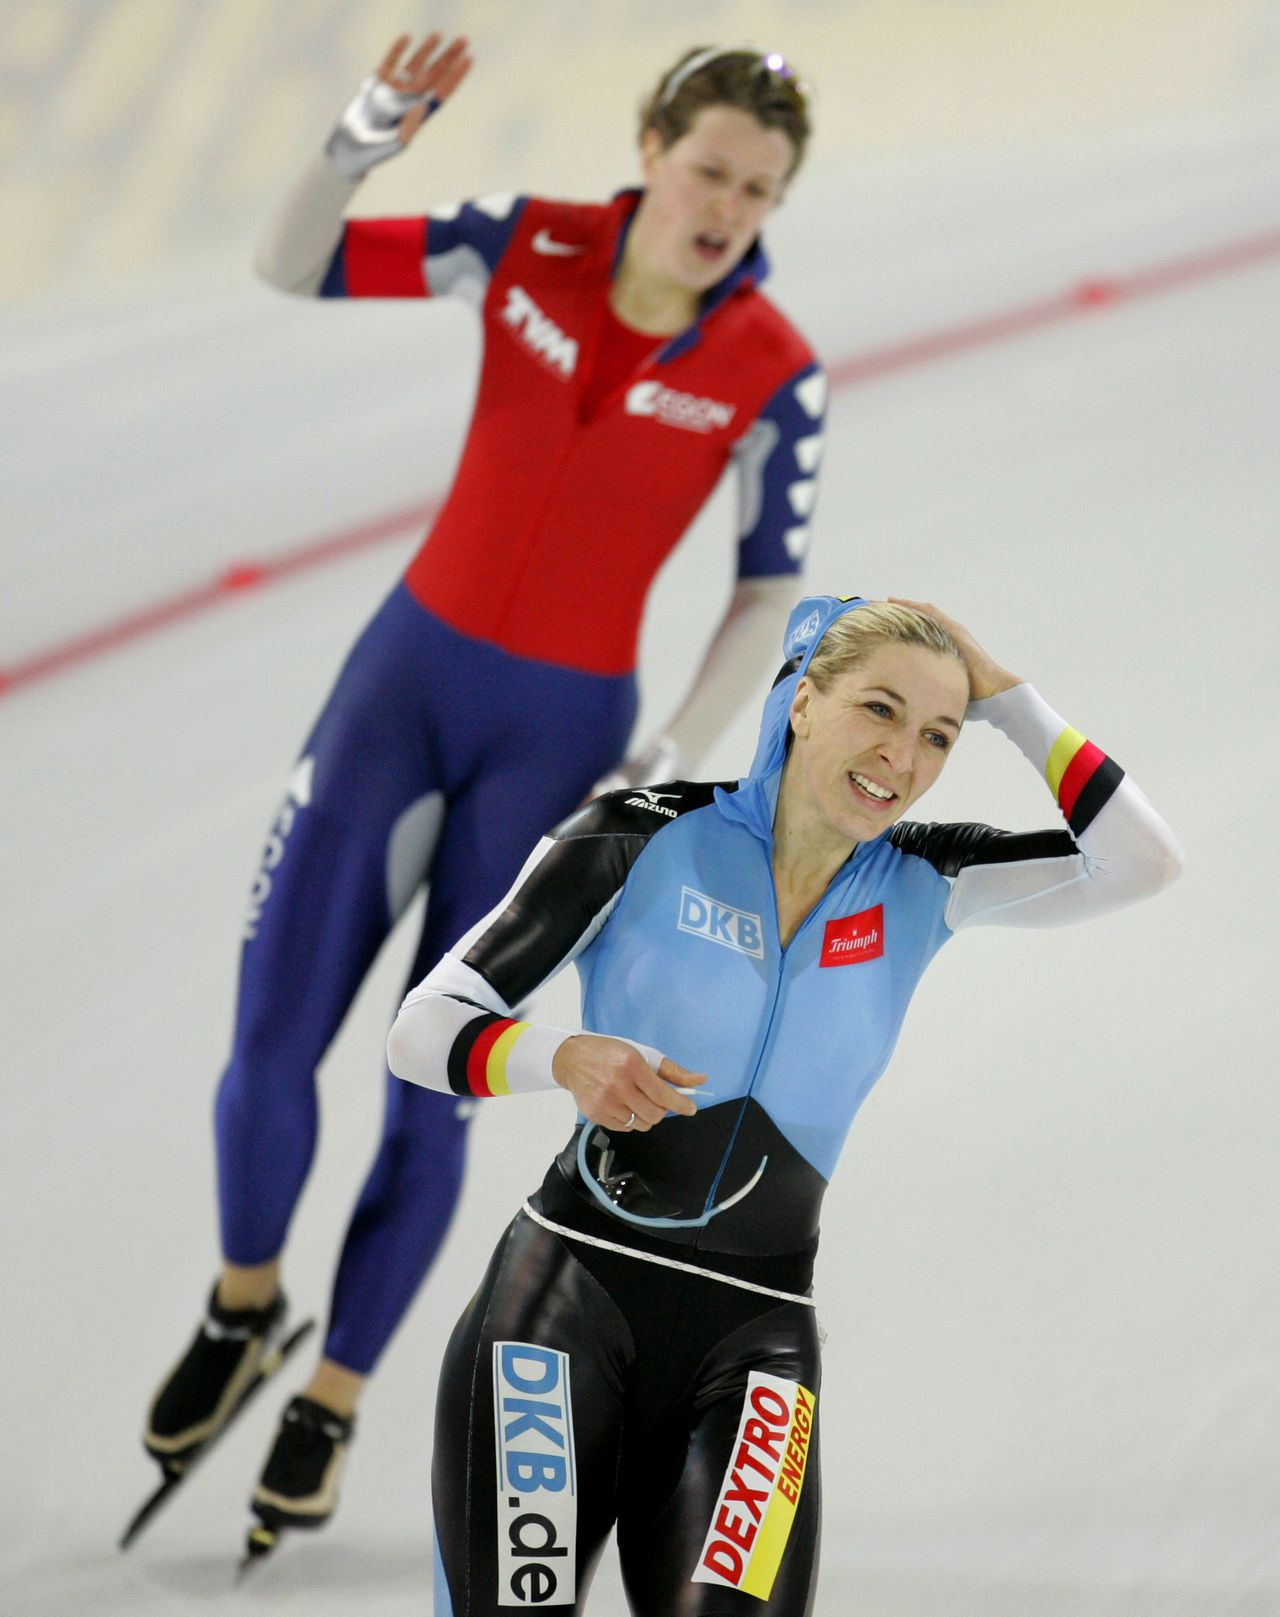 Anni Friesinger en Ireen Wüst na de afsluitende 1.00 meter. Foto AP Gold medal winner Germany's Anni Friesinger, bottom, and silver medal winner Ireen Wust of Netherlands react after finishing their women's 1000 meters race during the second day of the World Sprint Speed Skating Championships at the Hamar Olympiahall Vikingskipet in Norway, Sunday Jan. 21, 2007. (AP Photo/Matt Dunham)